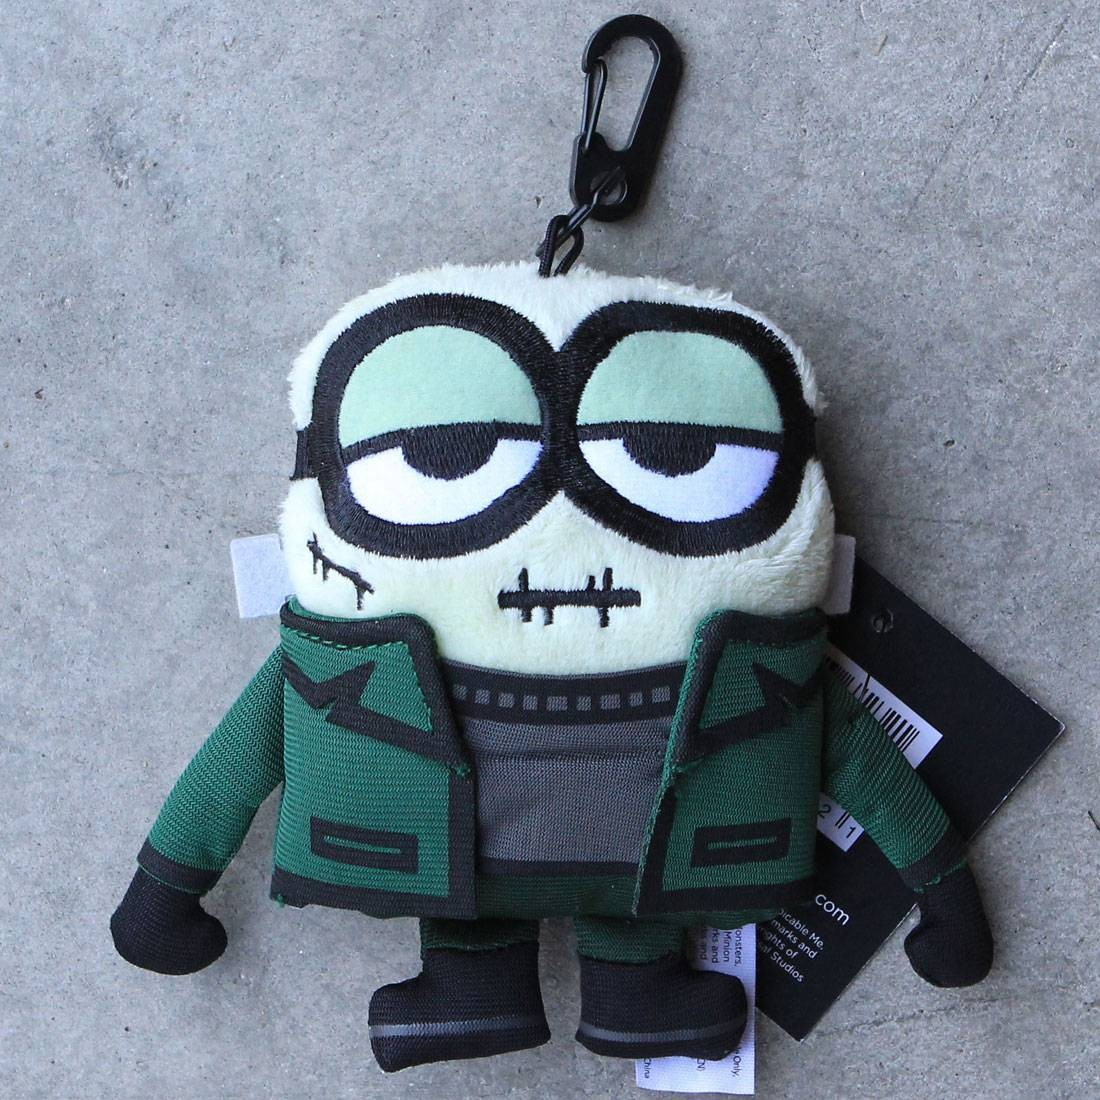 BAIT x Minion Monsters FrankenBob 5 Inch Plush Backpack Clip (green)